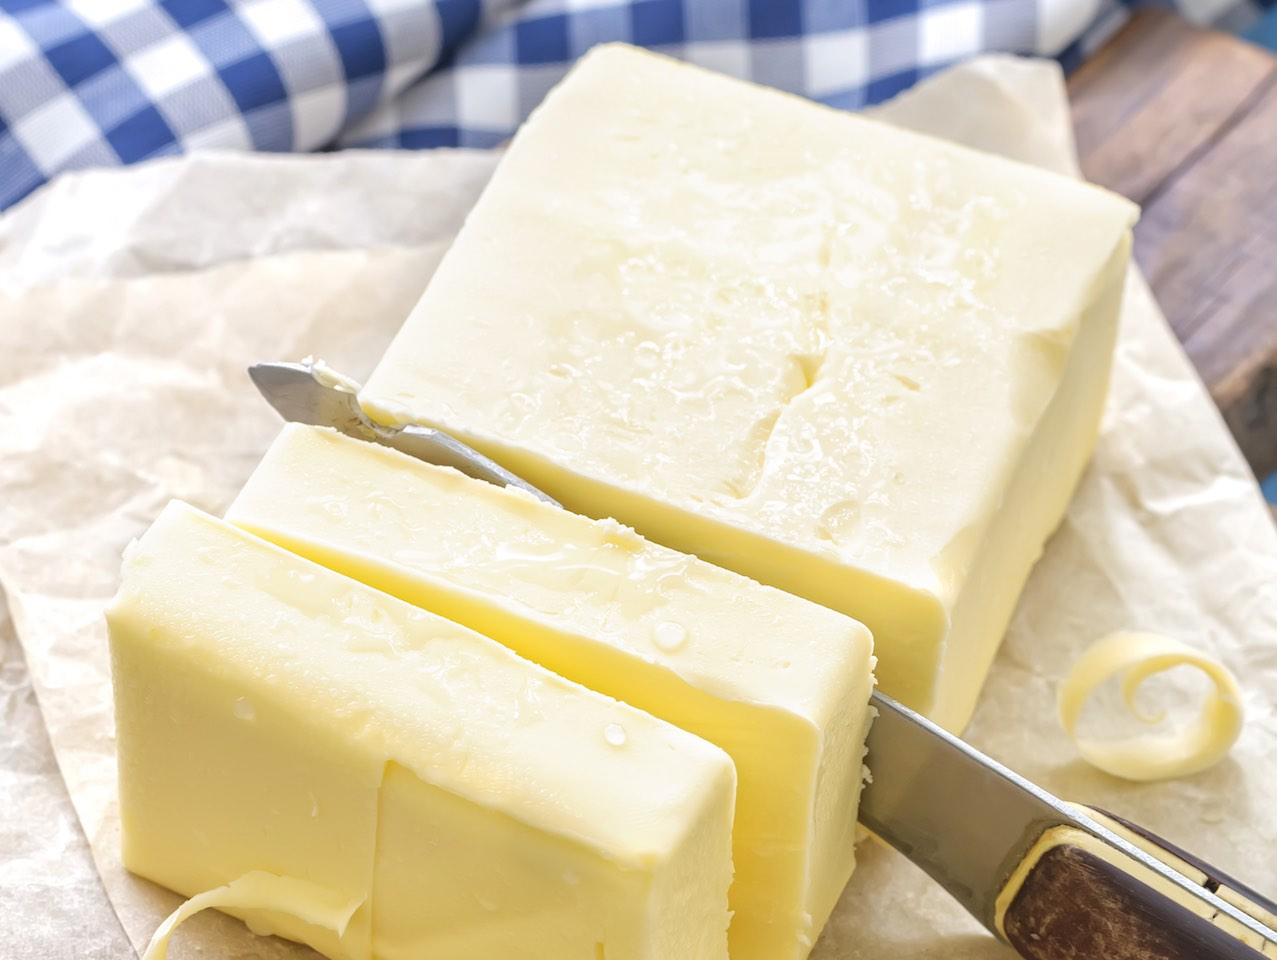 Knife slicing through slab of butter.